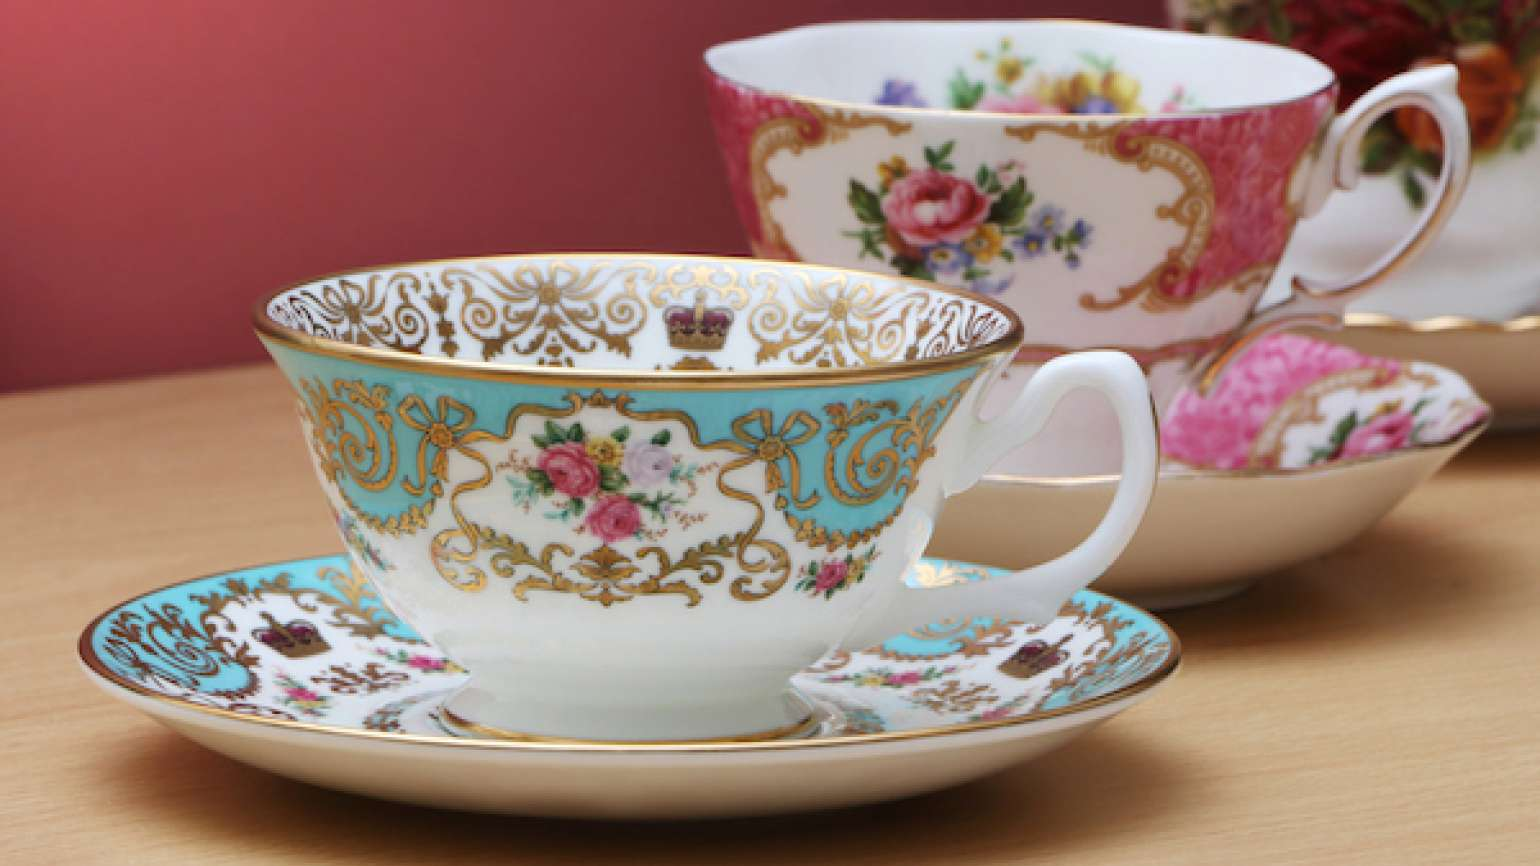 How the gift of a tea set brought healing.